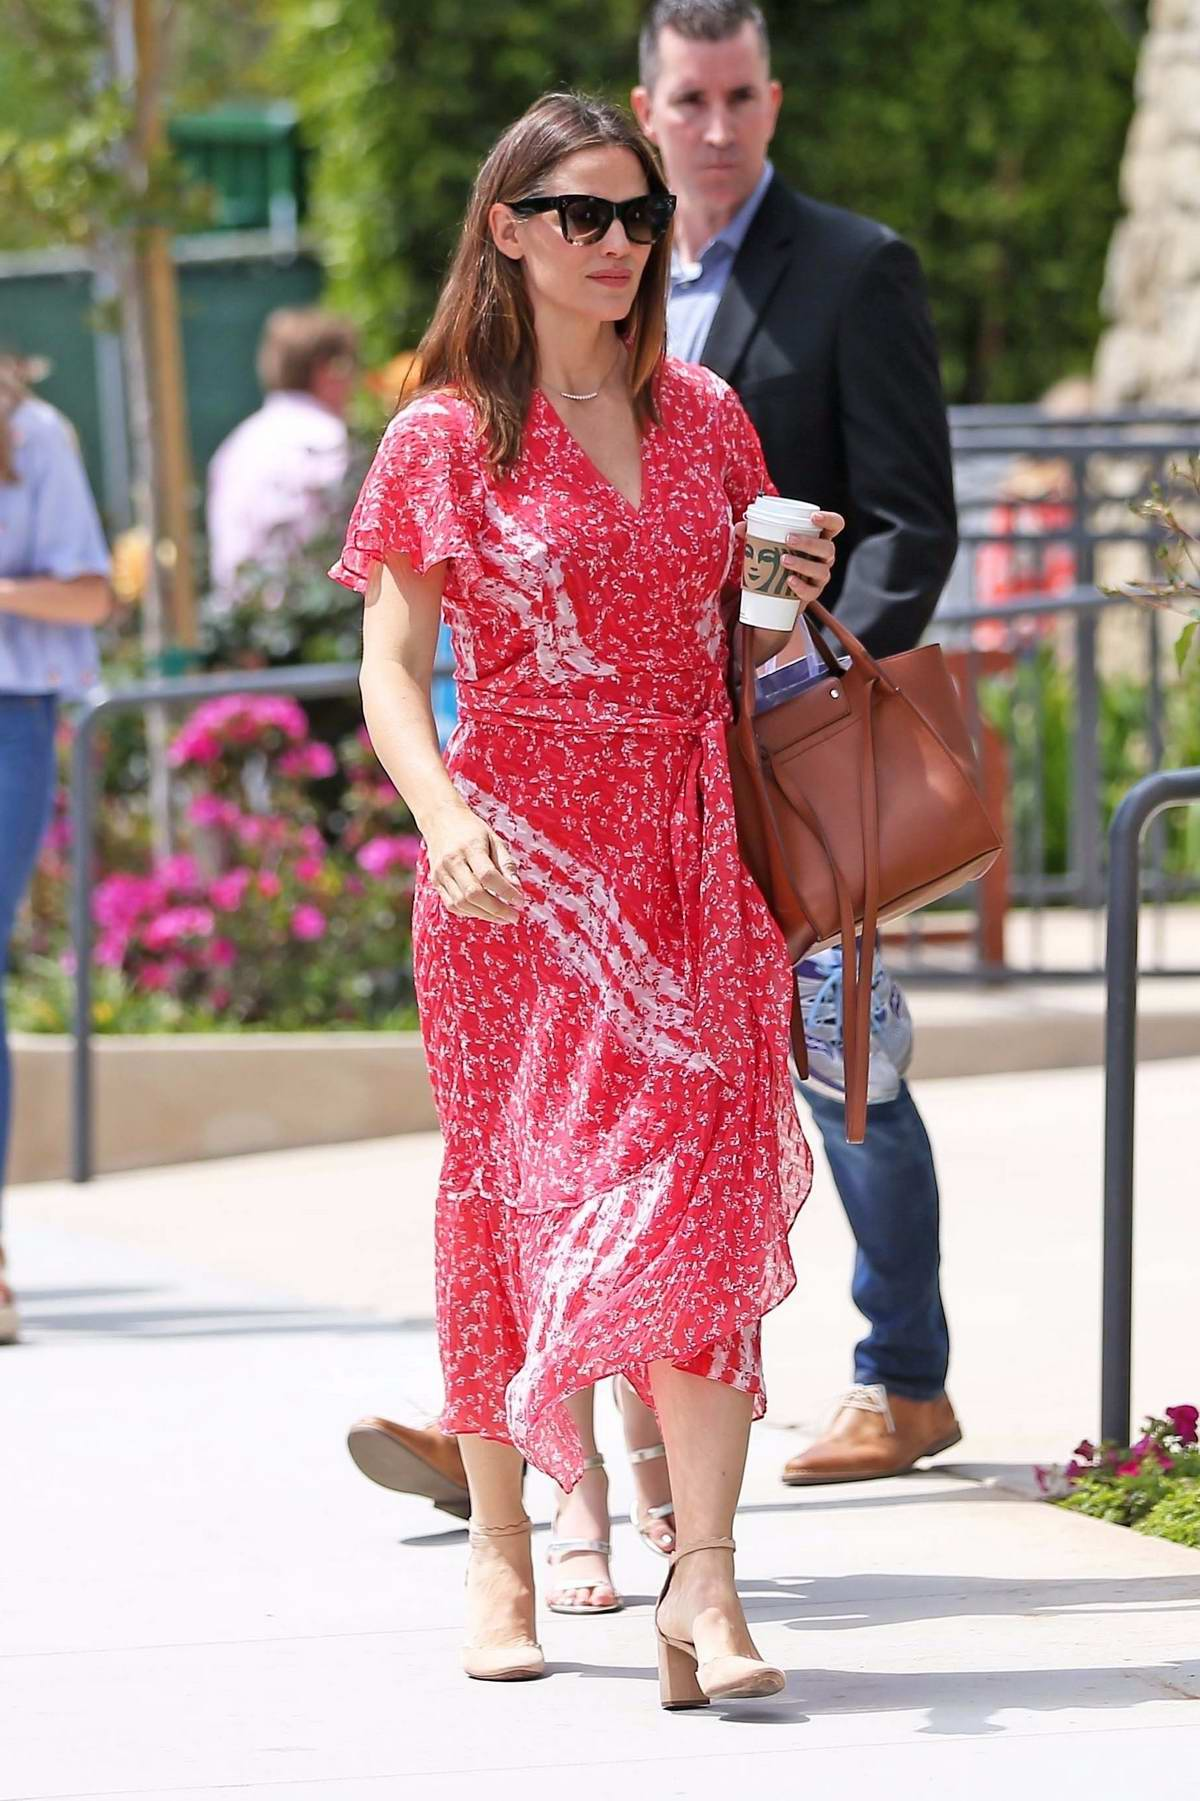 Jennifer Garner looks lovely in a patterned red dress as she attends the Easter Sunday church services in Los Angeles